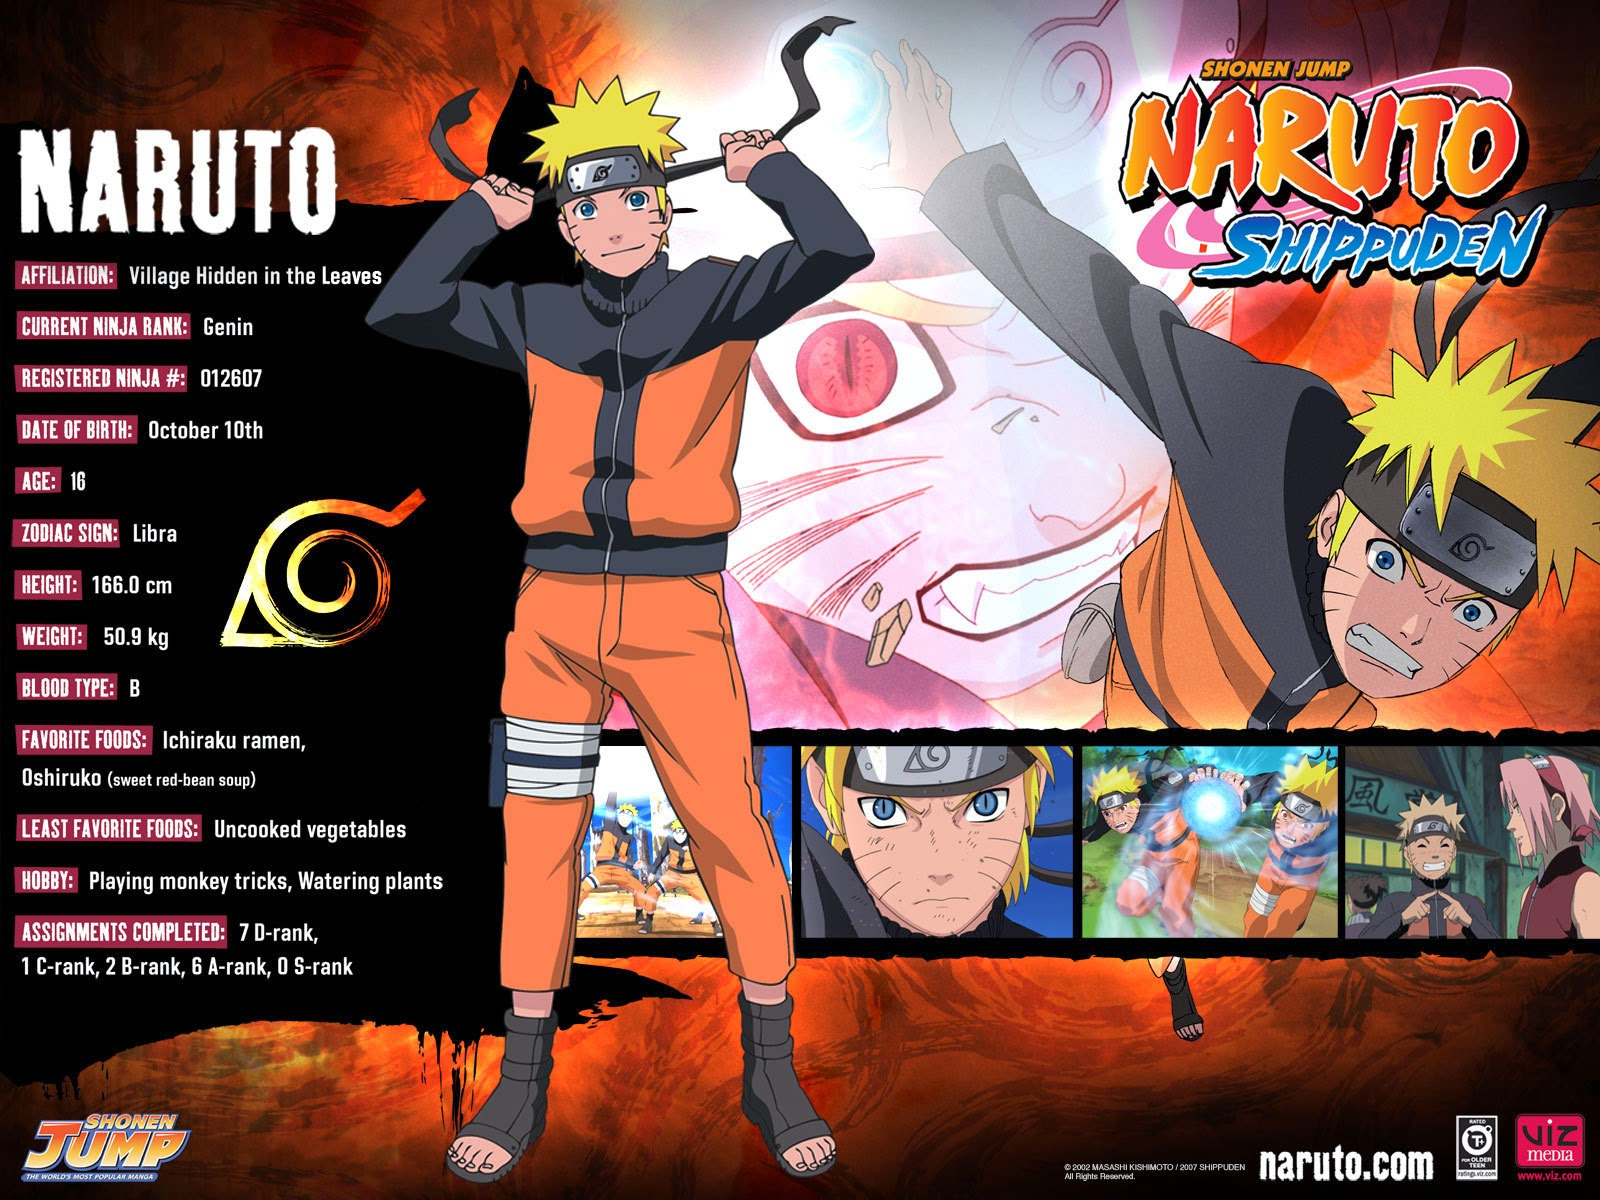 watch naruto shippuden dubbed online free